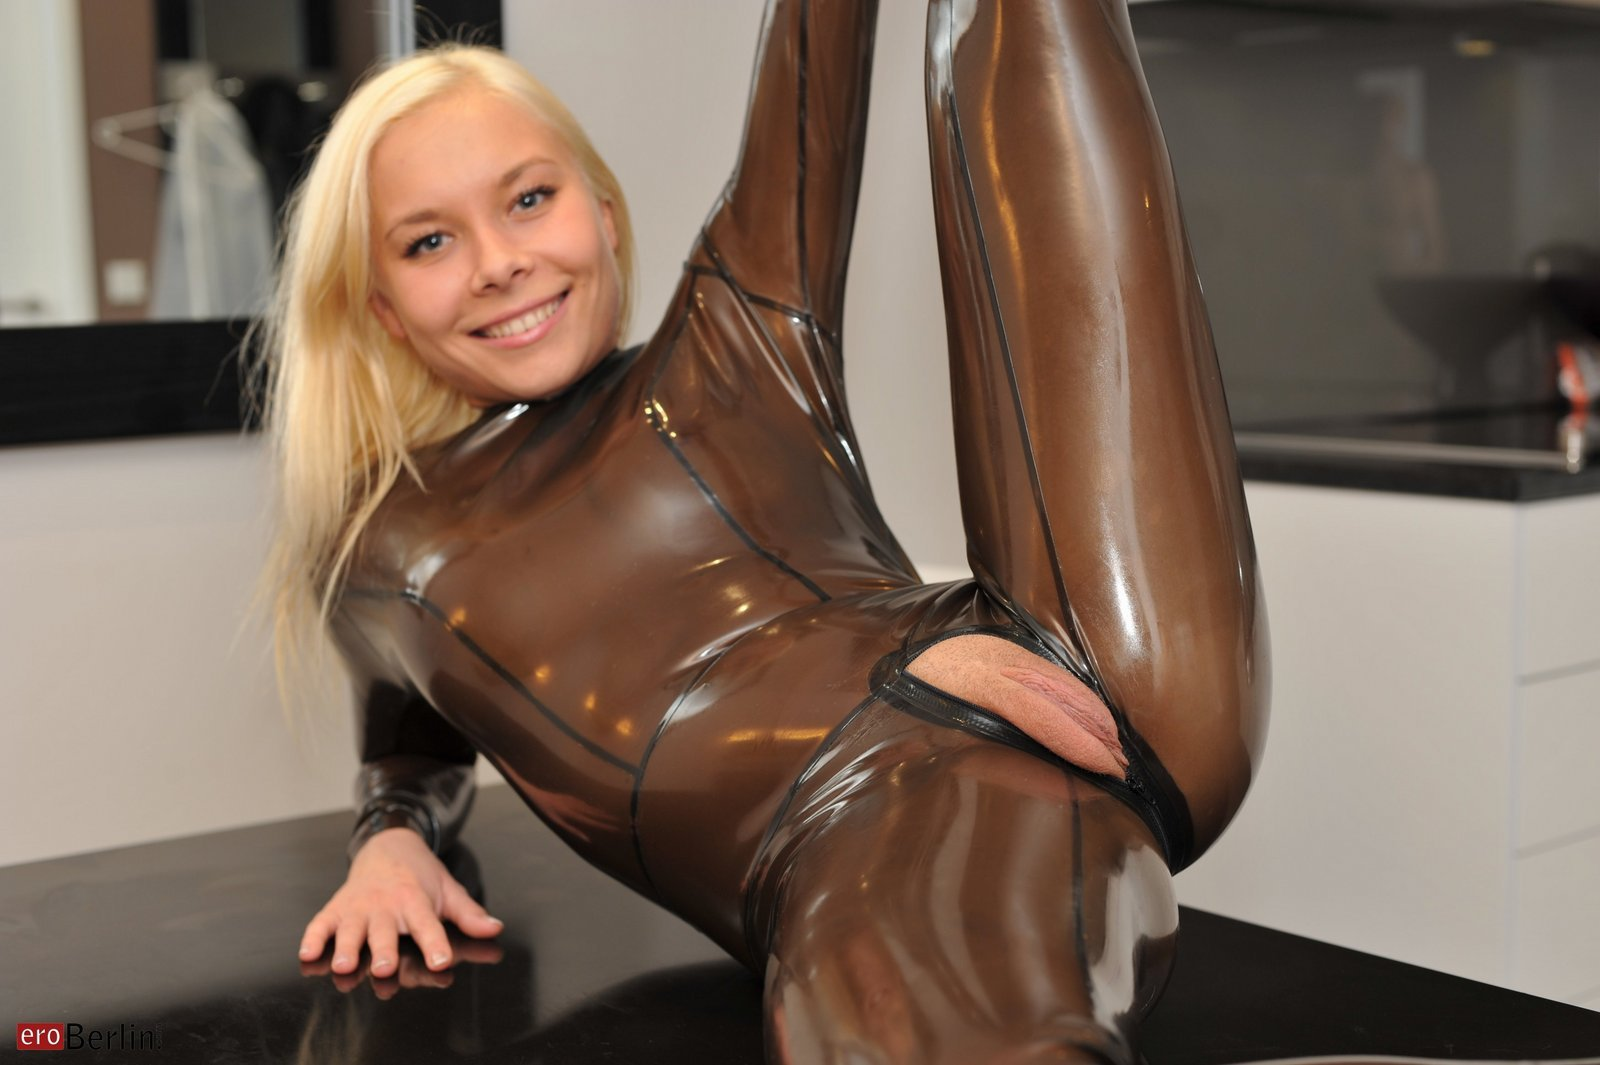 latex blowjob nudist bilder